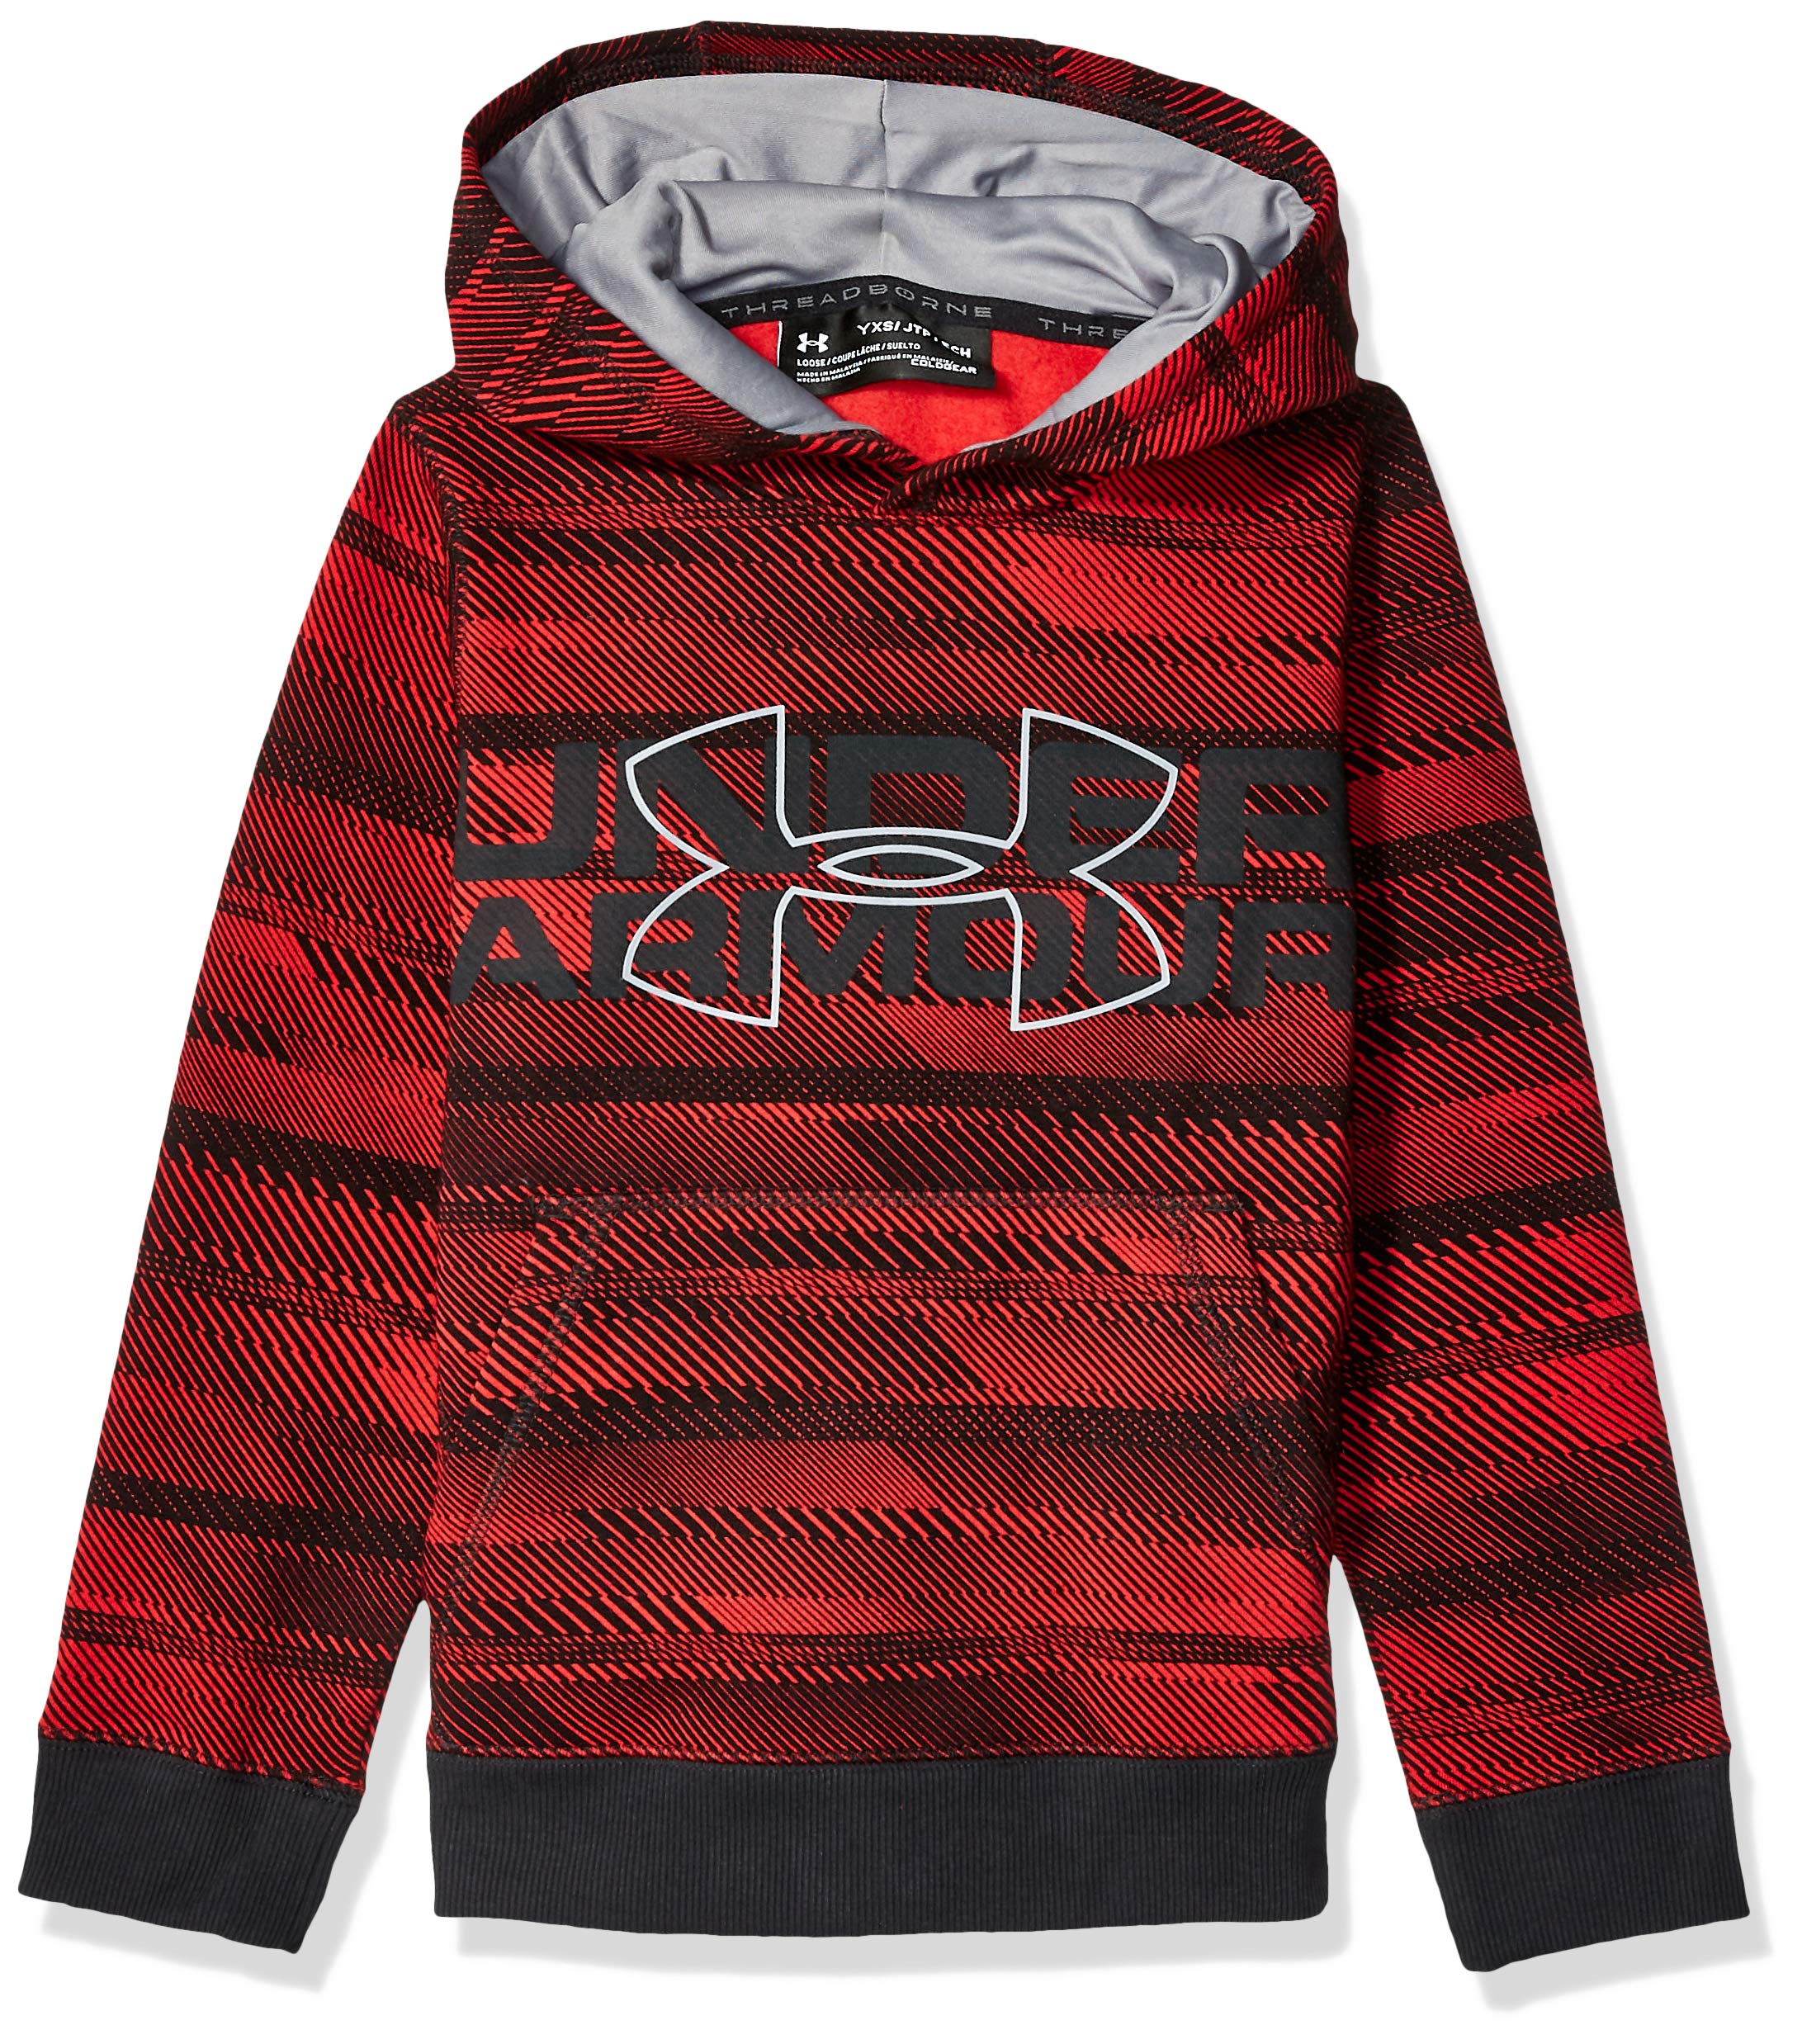 Under Armour Boys' Threadborne Nov Logo Hoodie,Red /Steel, Youth X-Large by Under Armour